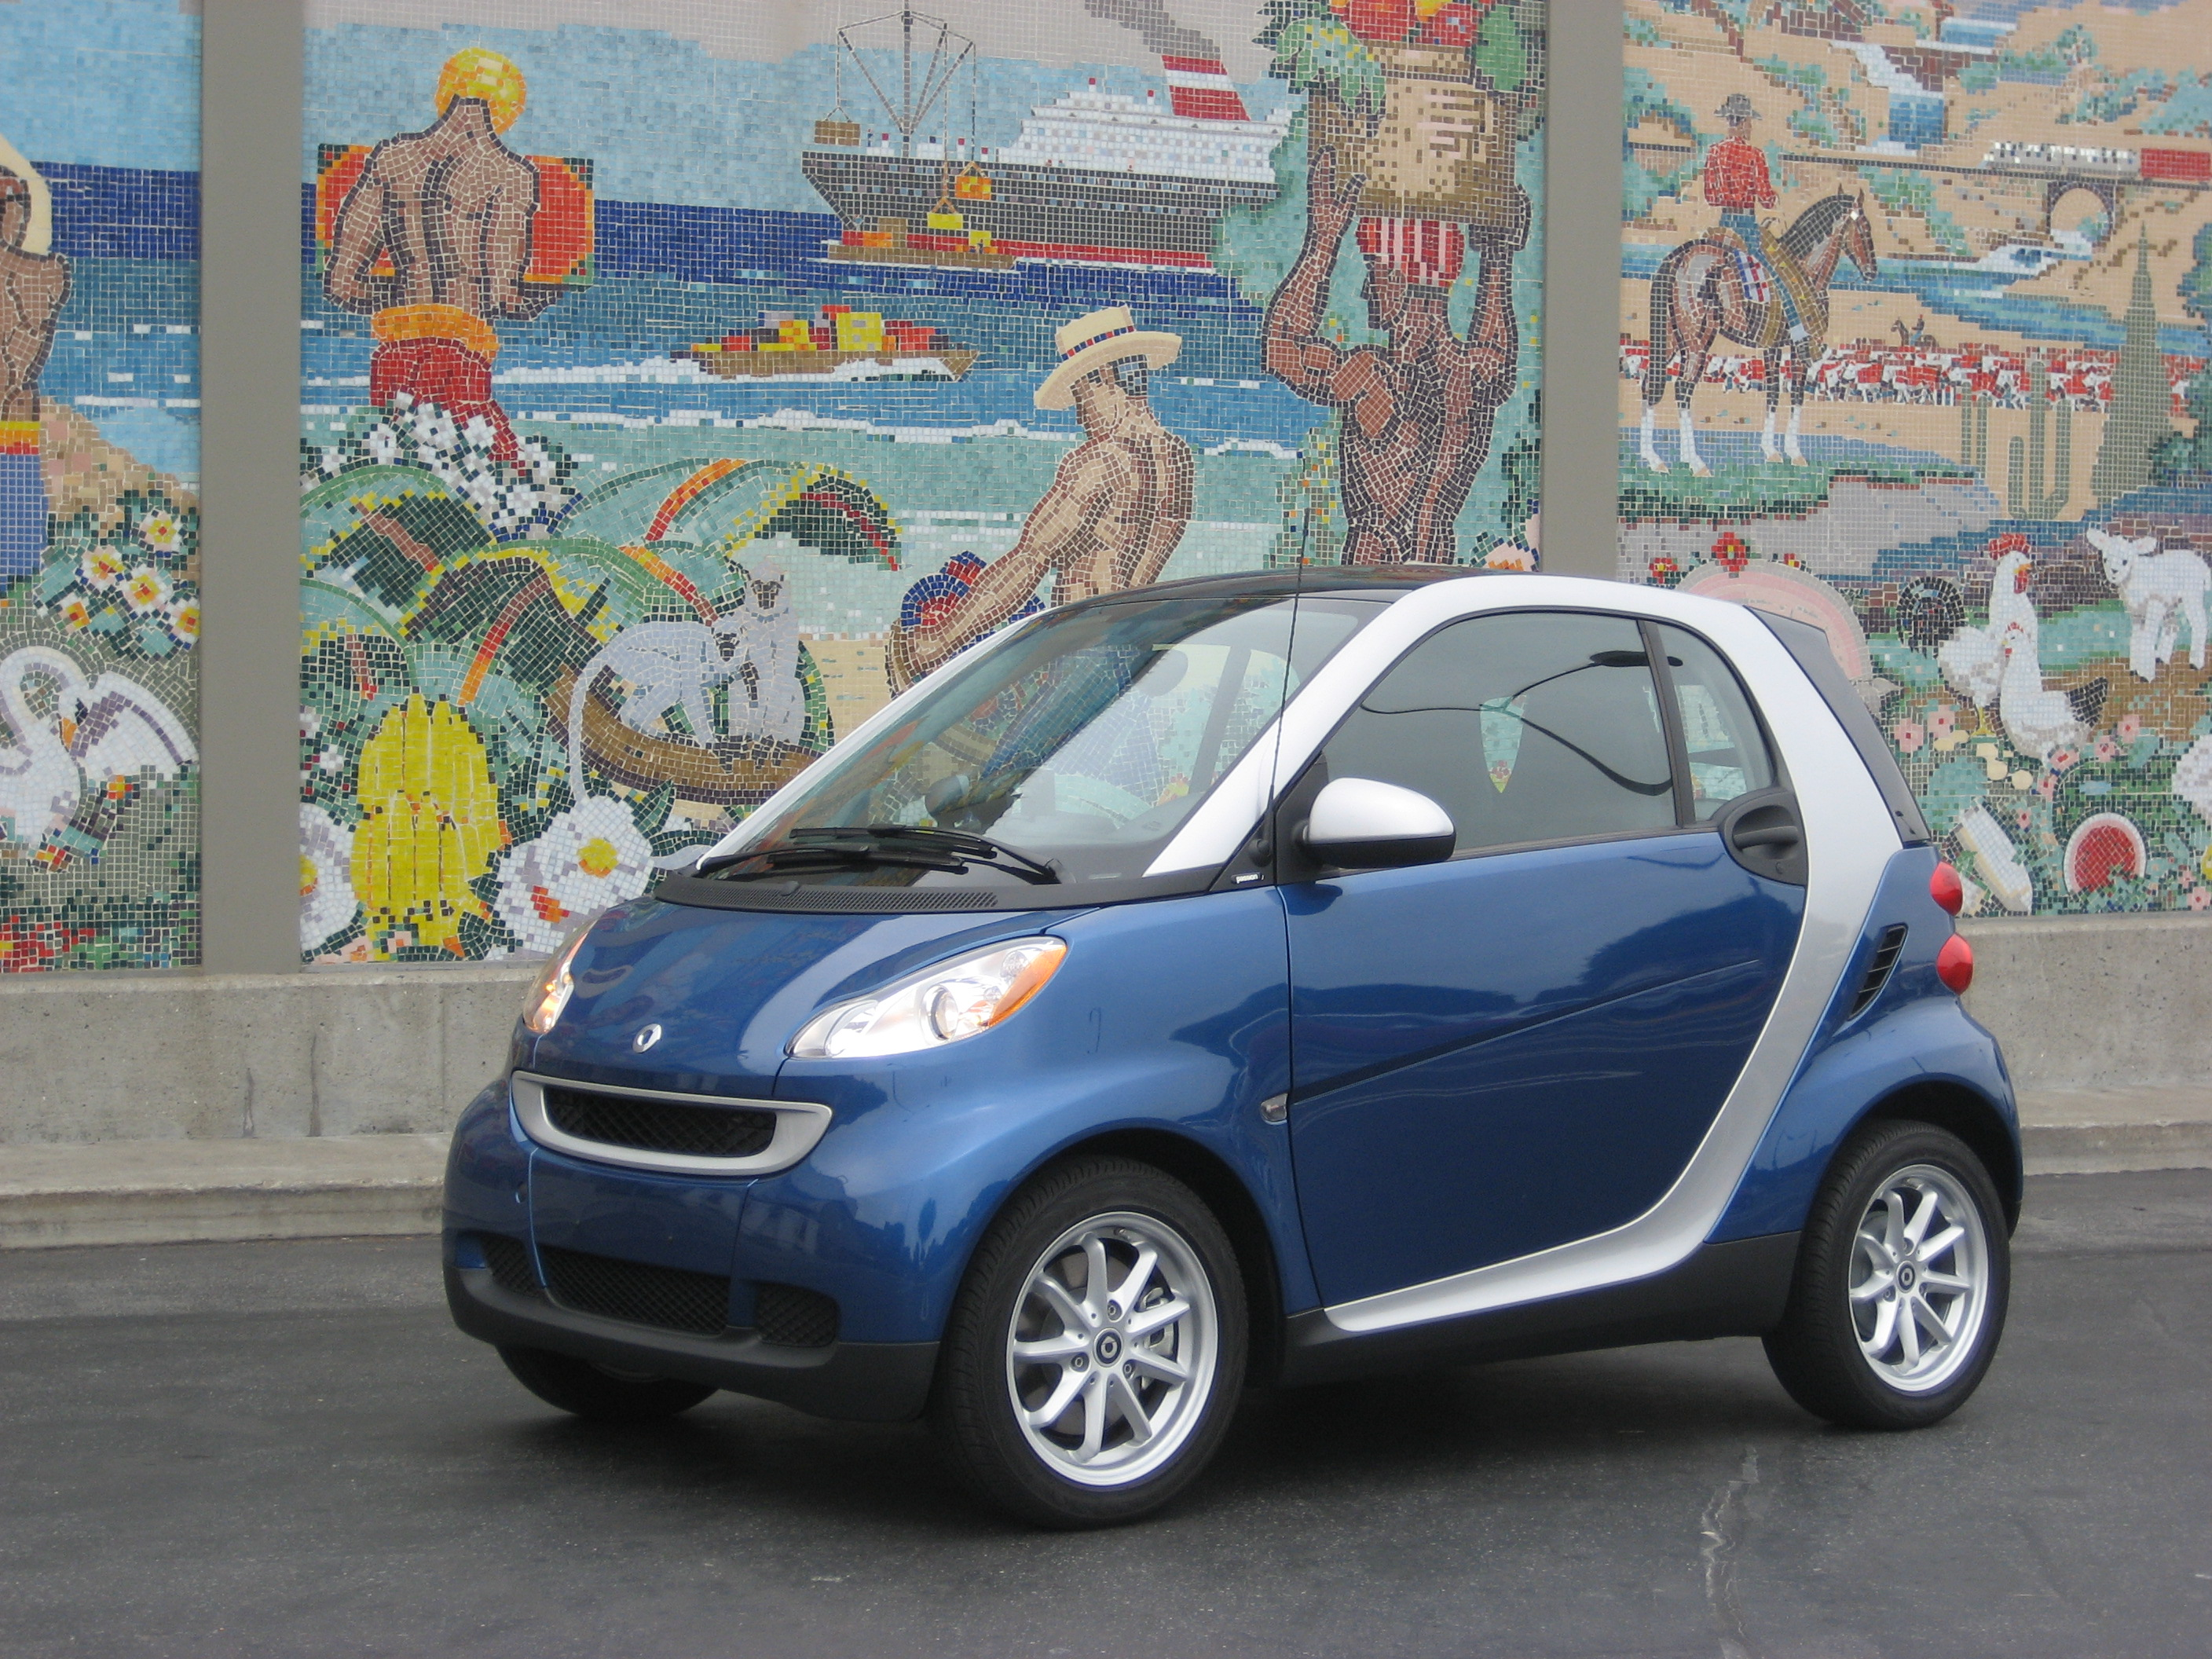 2008 Smart Fortwo Photos, Informations, Articles - BestCarMag.com